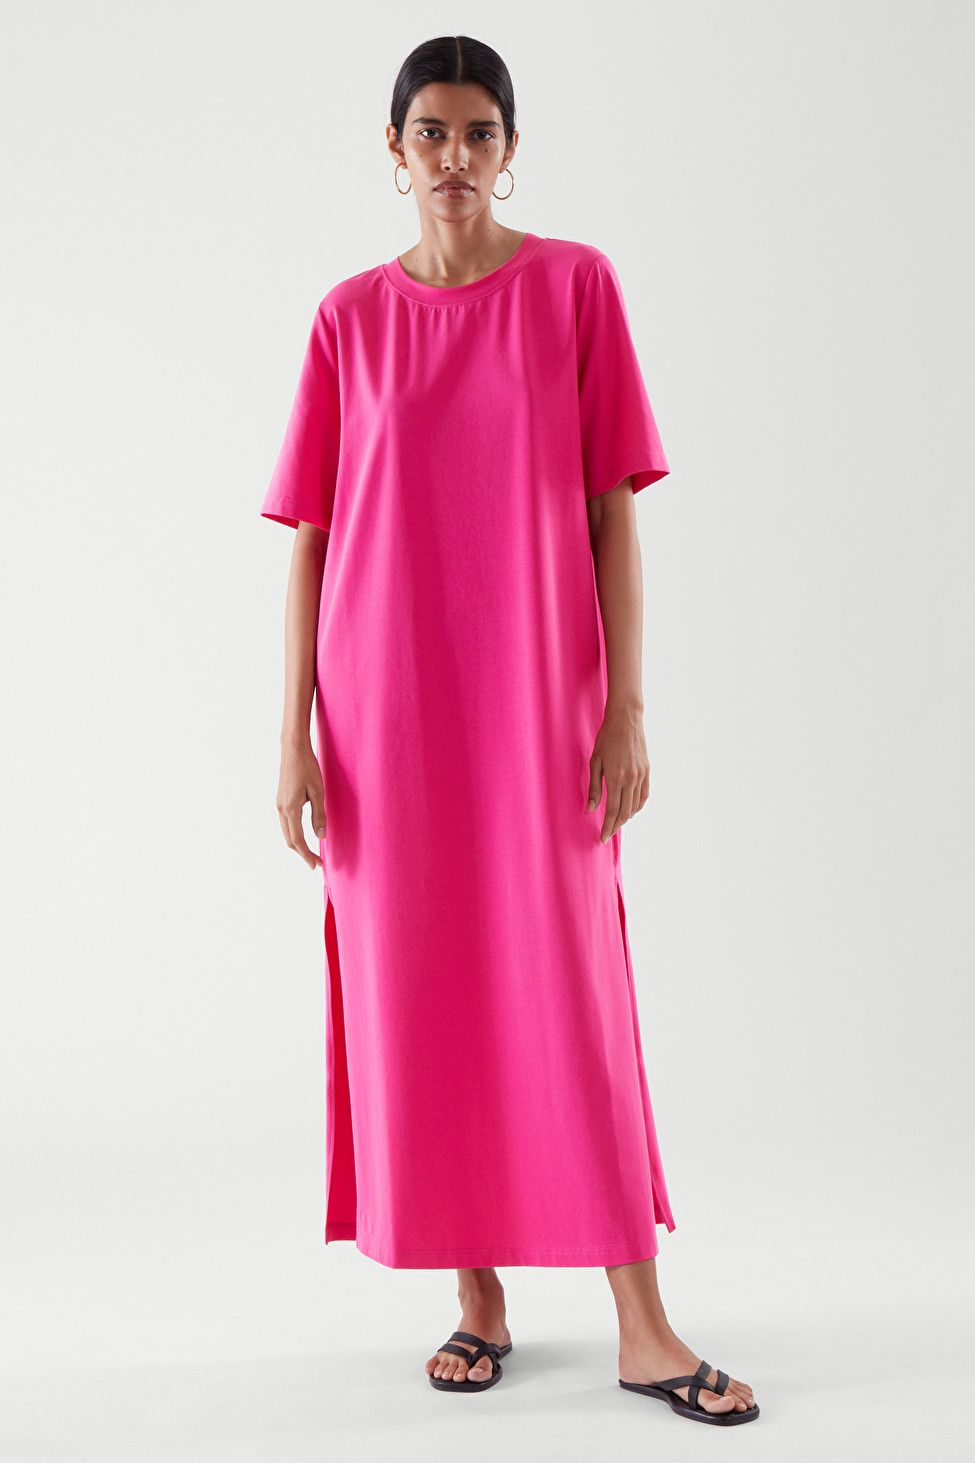 We Are All in Agreement: This COS Dress Is a High-Street Highlight